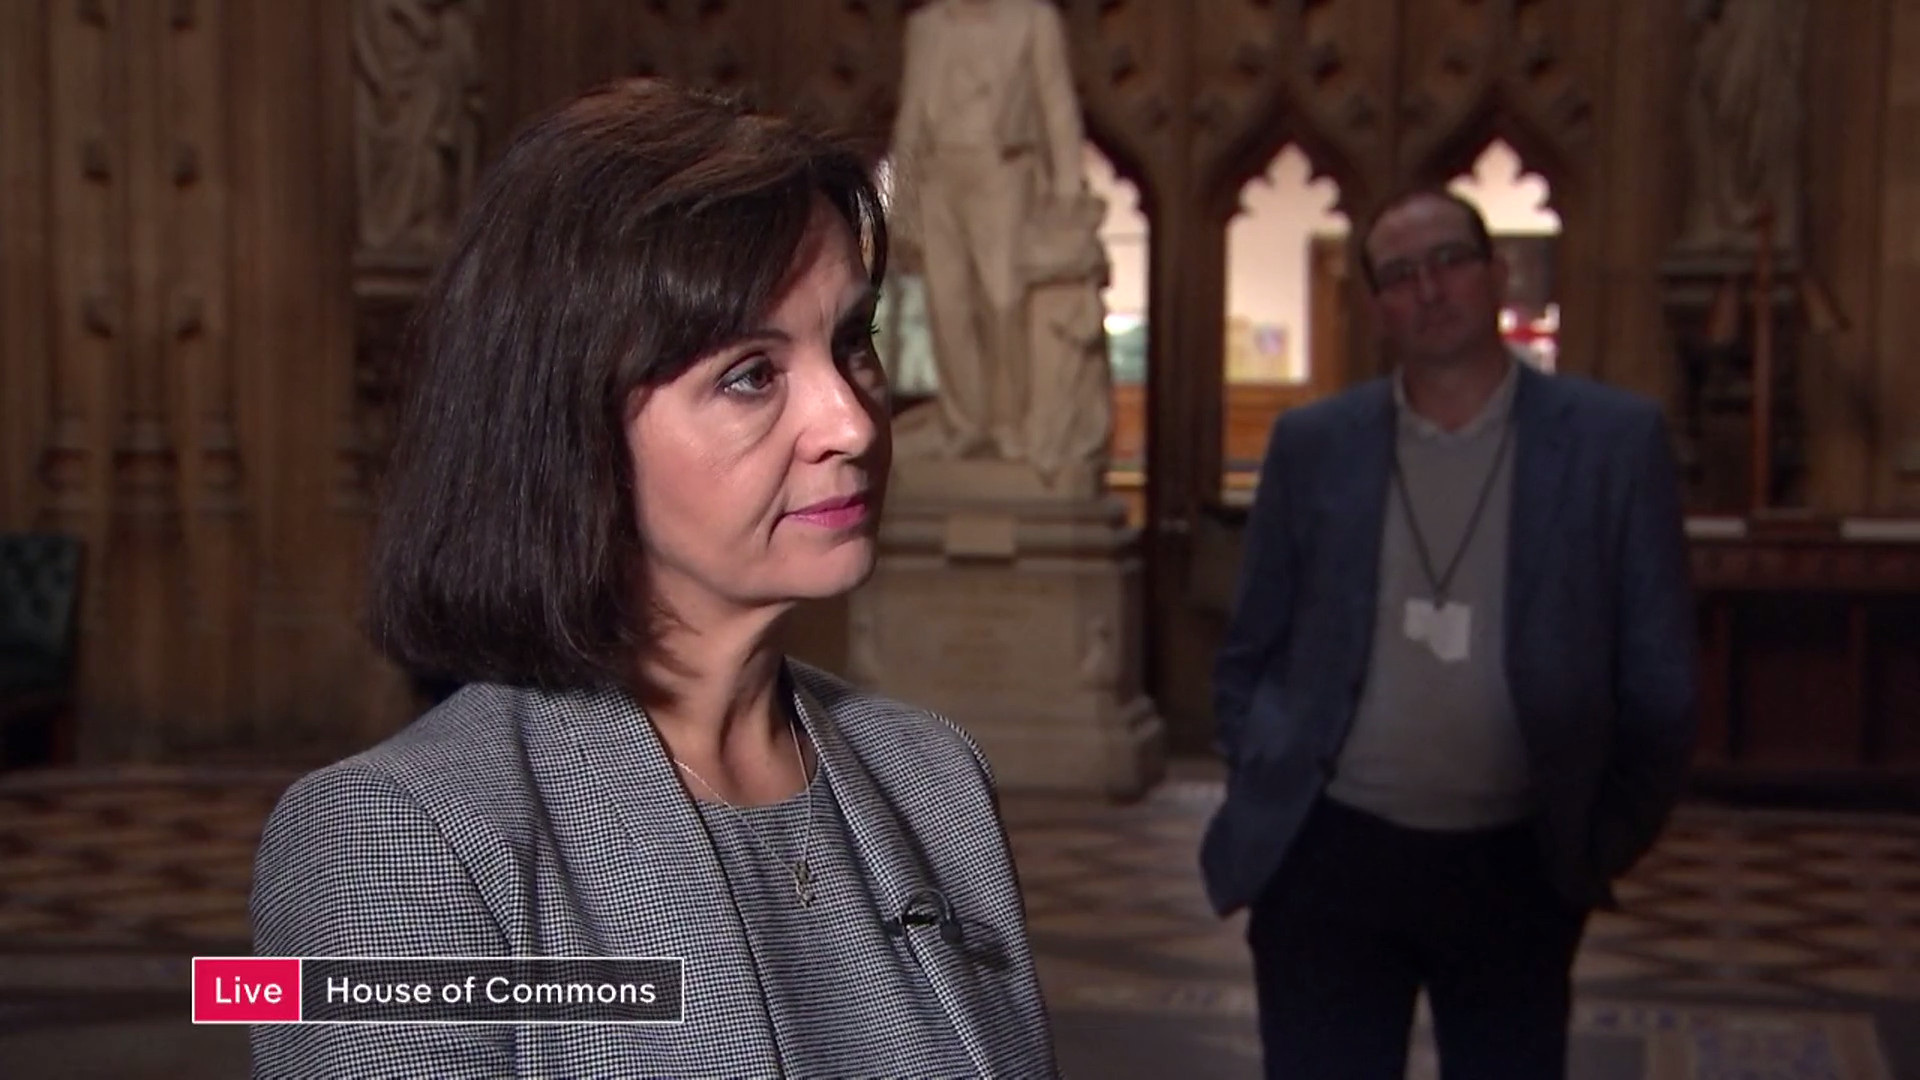 Labour MP Caroline Flint: 'I promised voters we would respect outcome of referendum'